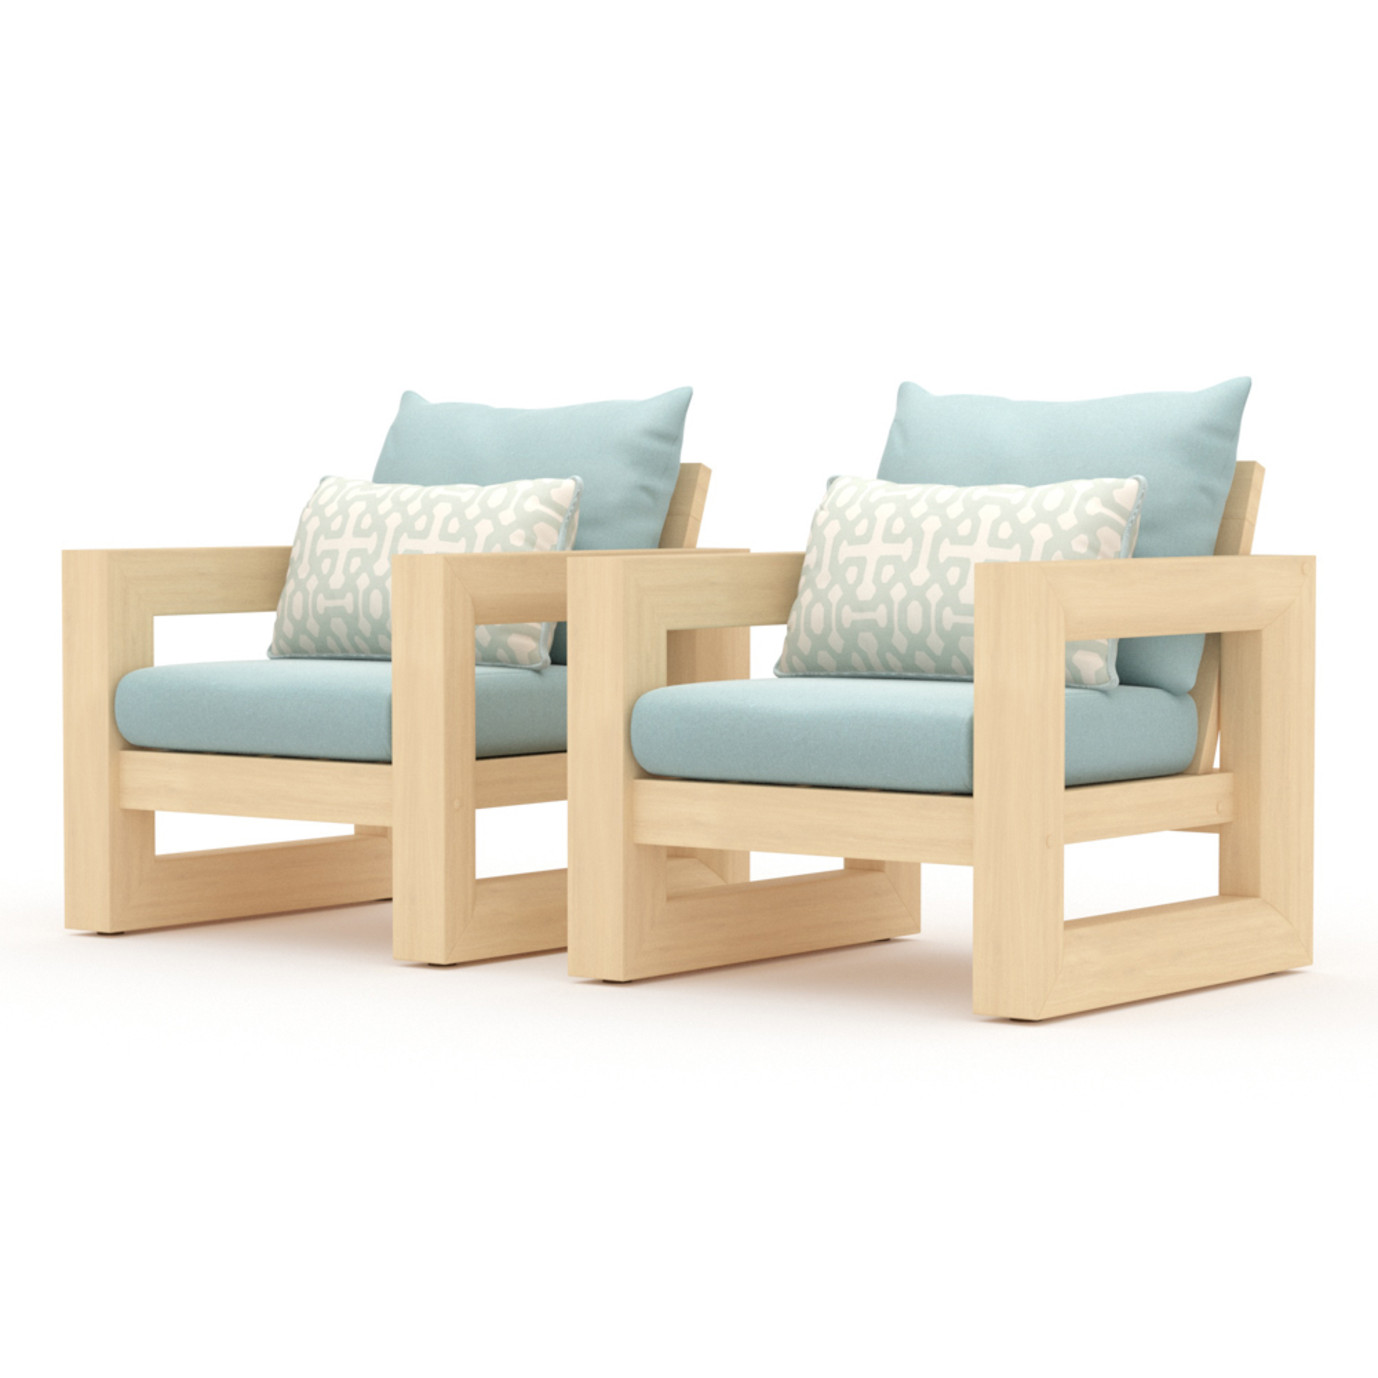 Benson Club Chairs - Spa Blue